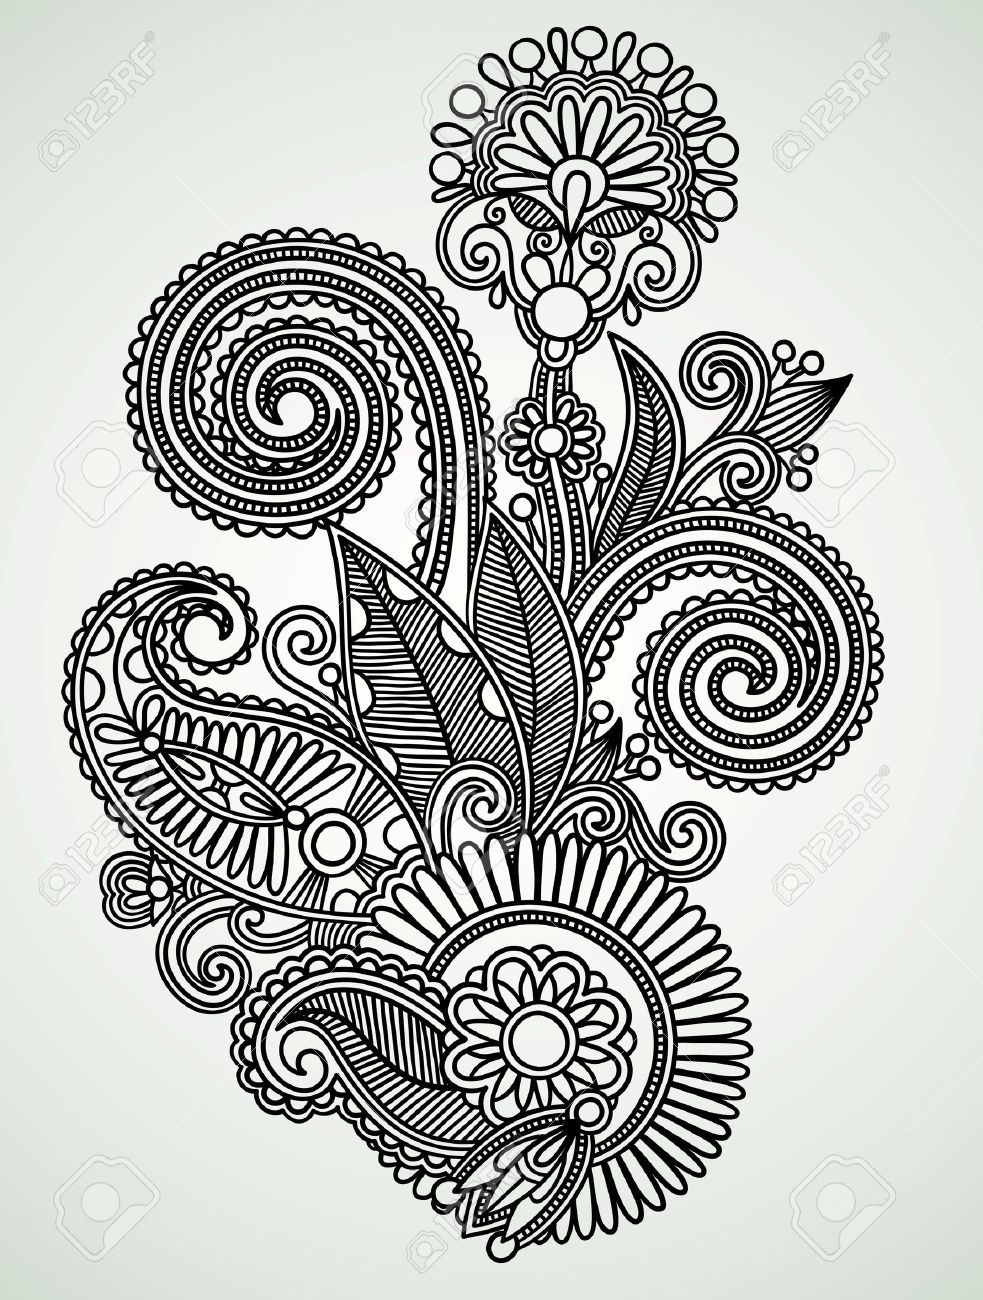 Henna Design Line Art : Indian motif drawings google search motifs pinterest